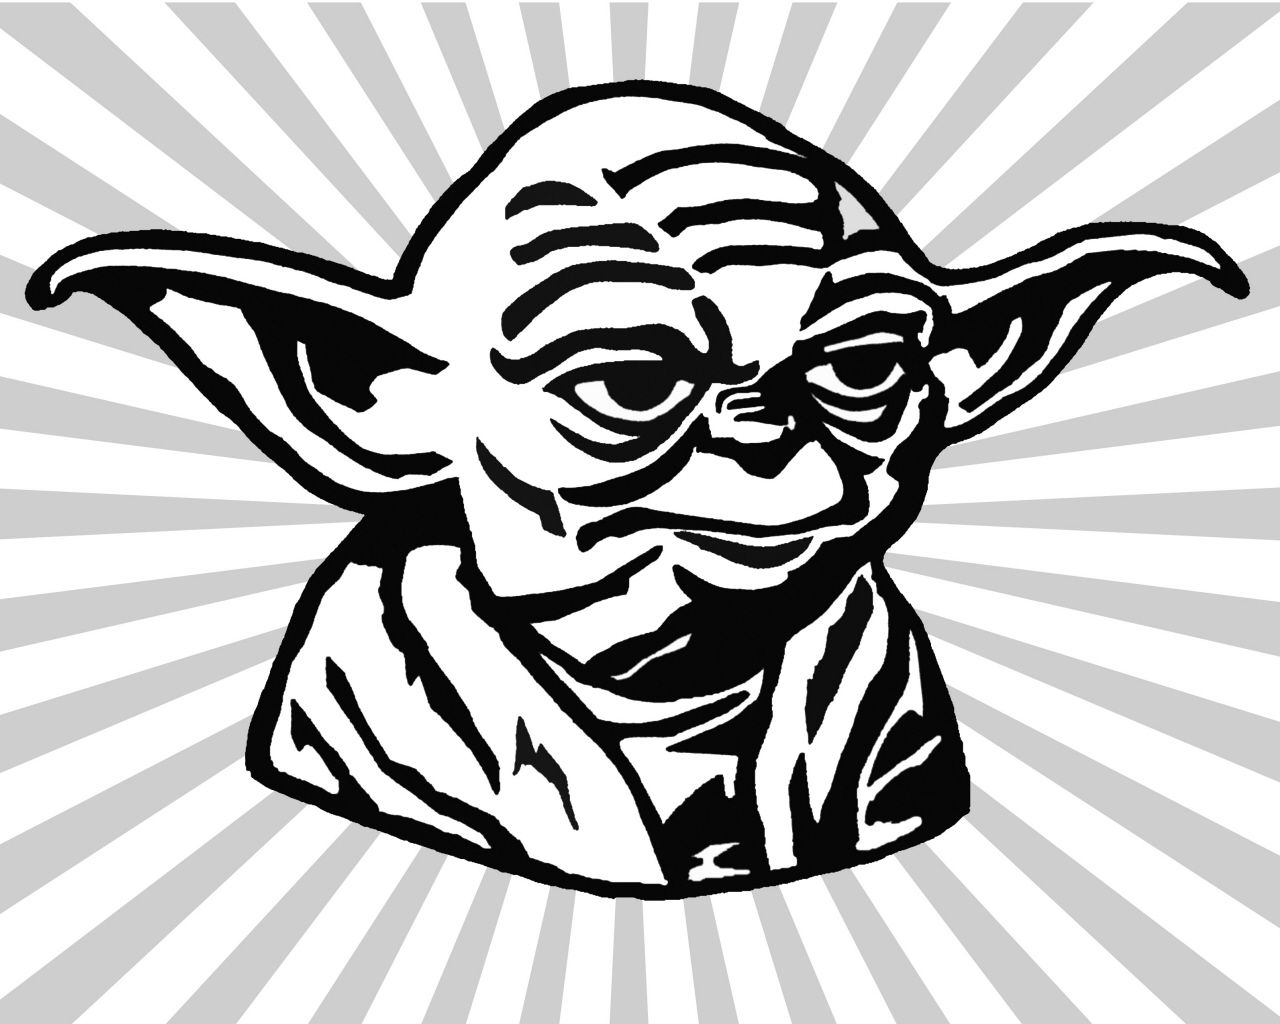 Yoda black and white clipart clipart kid